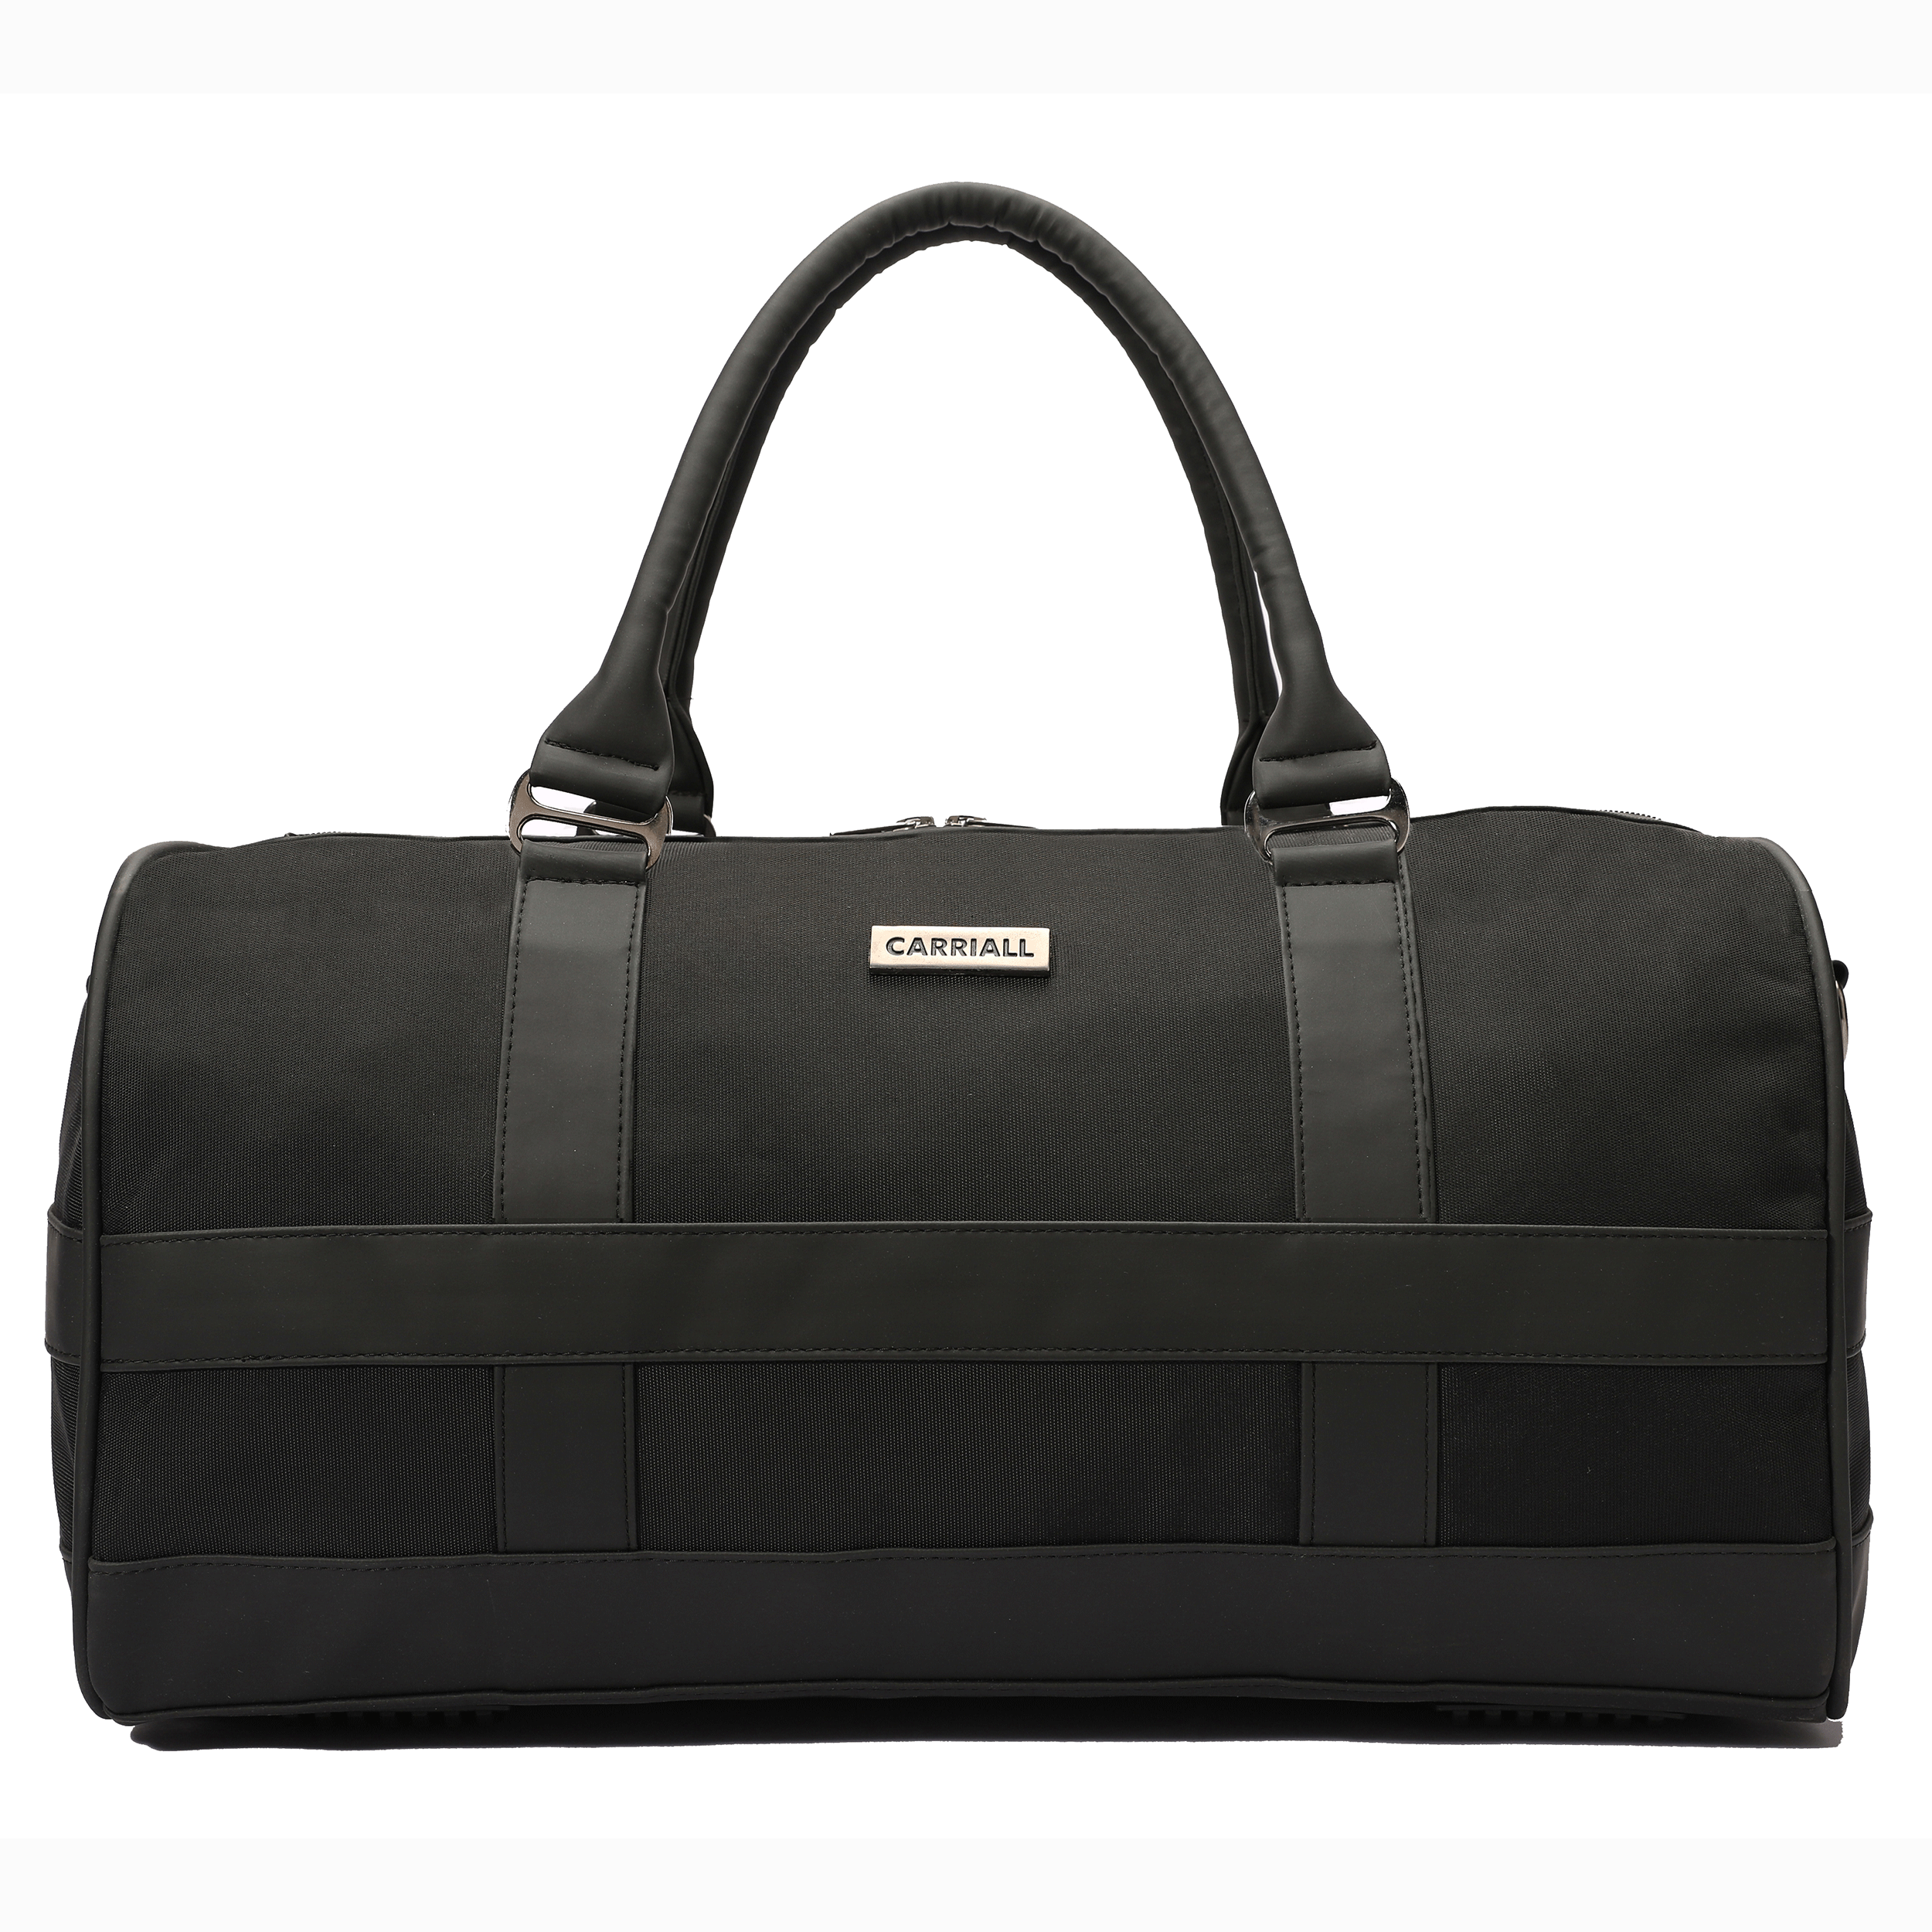 Carriall Poise Durable Fabric Duffle Bag (Water-Resistant, CADBPOS01, Black)_1